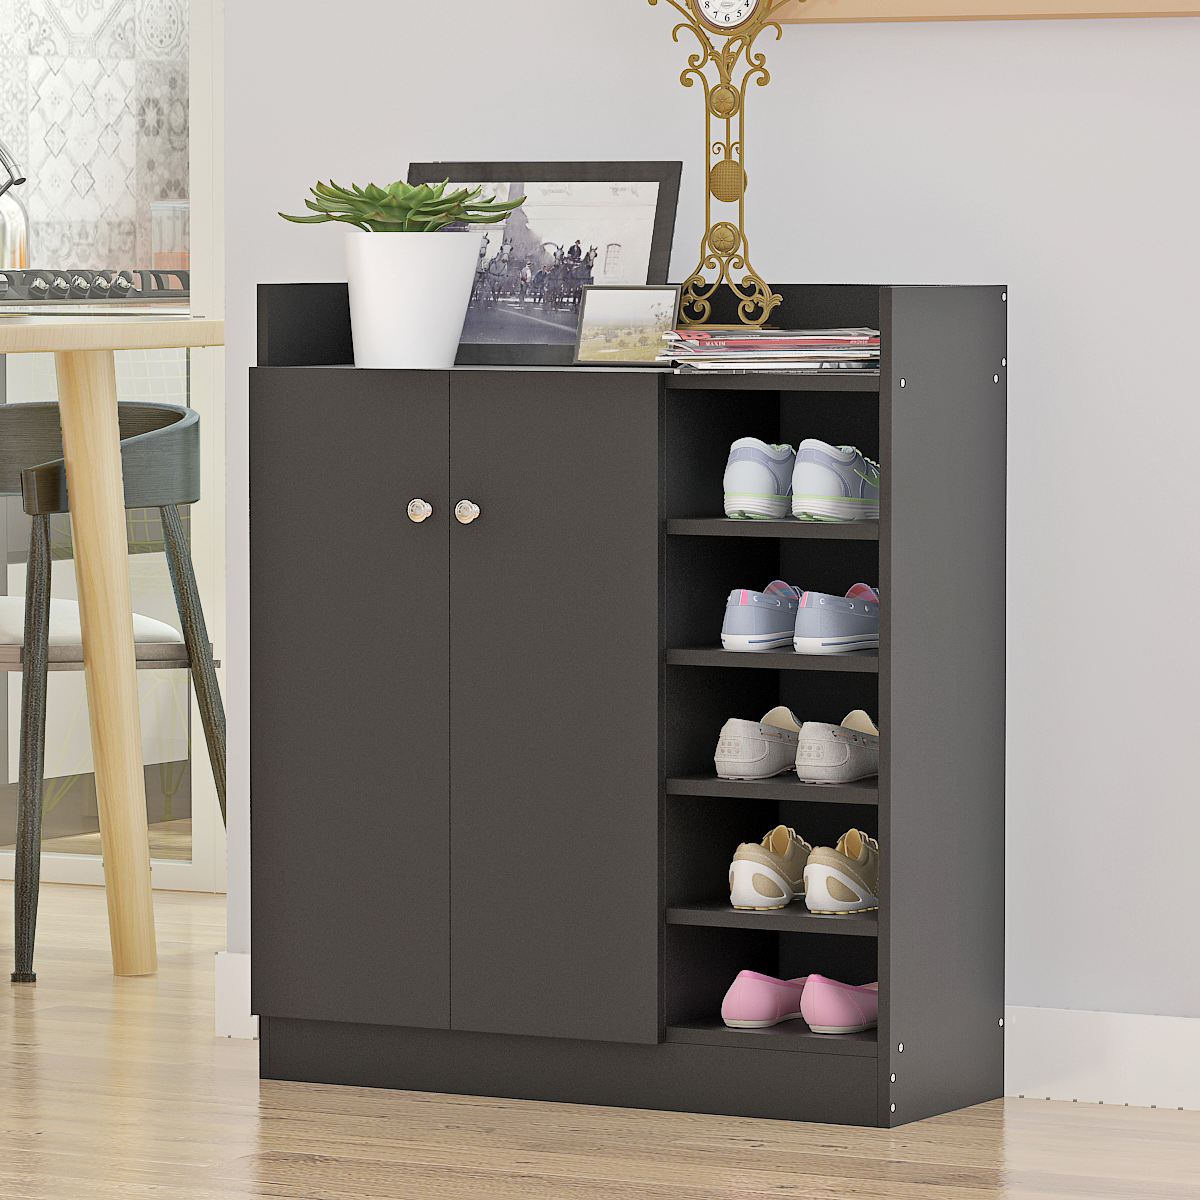 Home Furnitures Shoe Storage Cupboard Cabinet Rack Four Adjustable Shelves Convenience Shoes Storage Ship In Normally